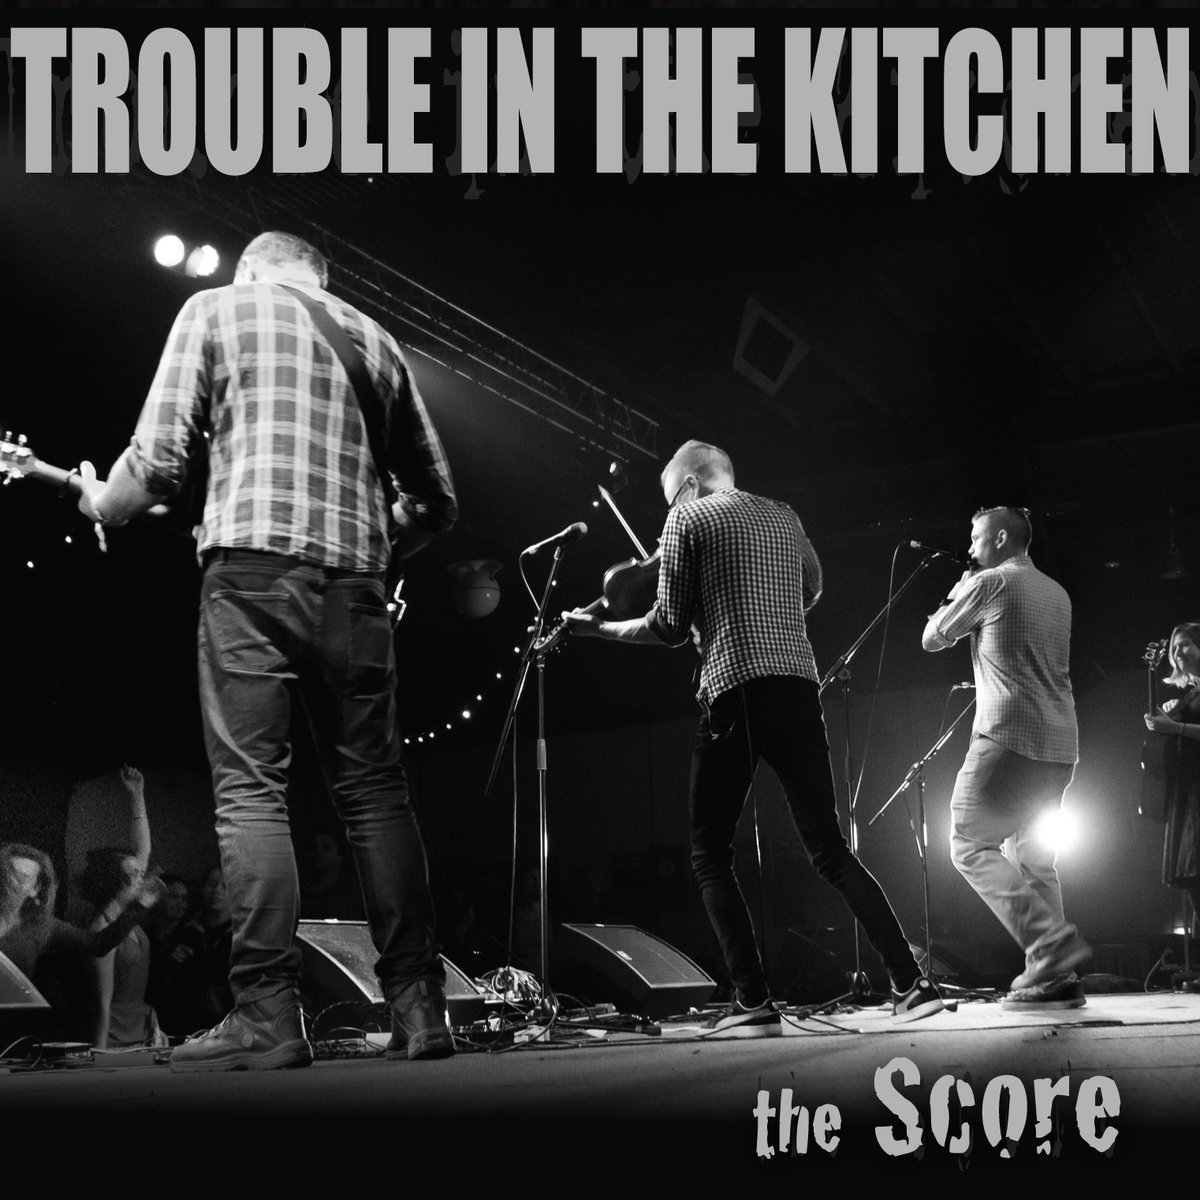 """Trouble in the Kitchen's 20 year anniversary album """"The Score"""". Engineered, mixed and mastered by Myles Mumford"""